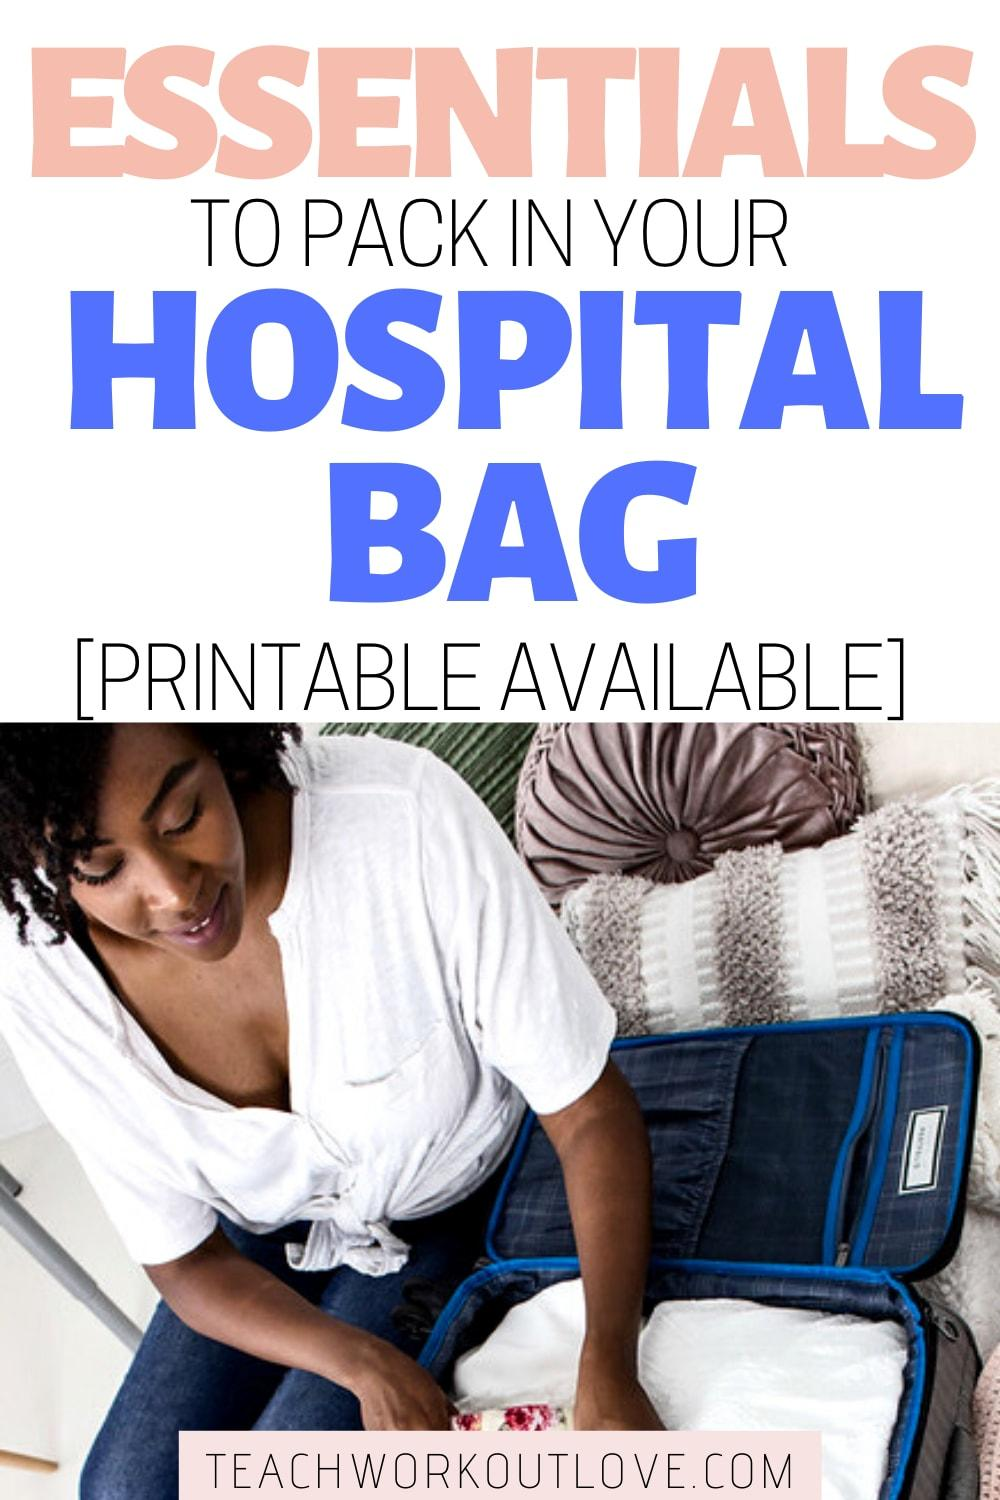 Are you having a baby soon? Make sure to start packing your hospital bag early. Not sure what to pack? We've got you covered + printable checklist!